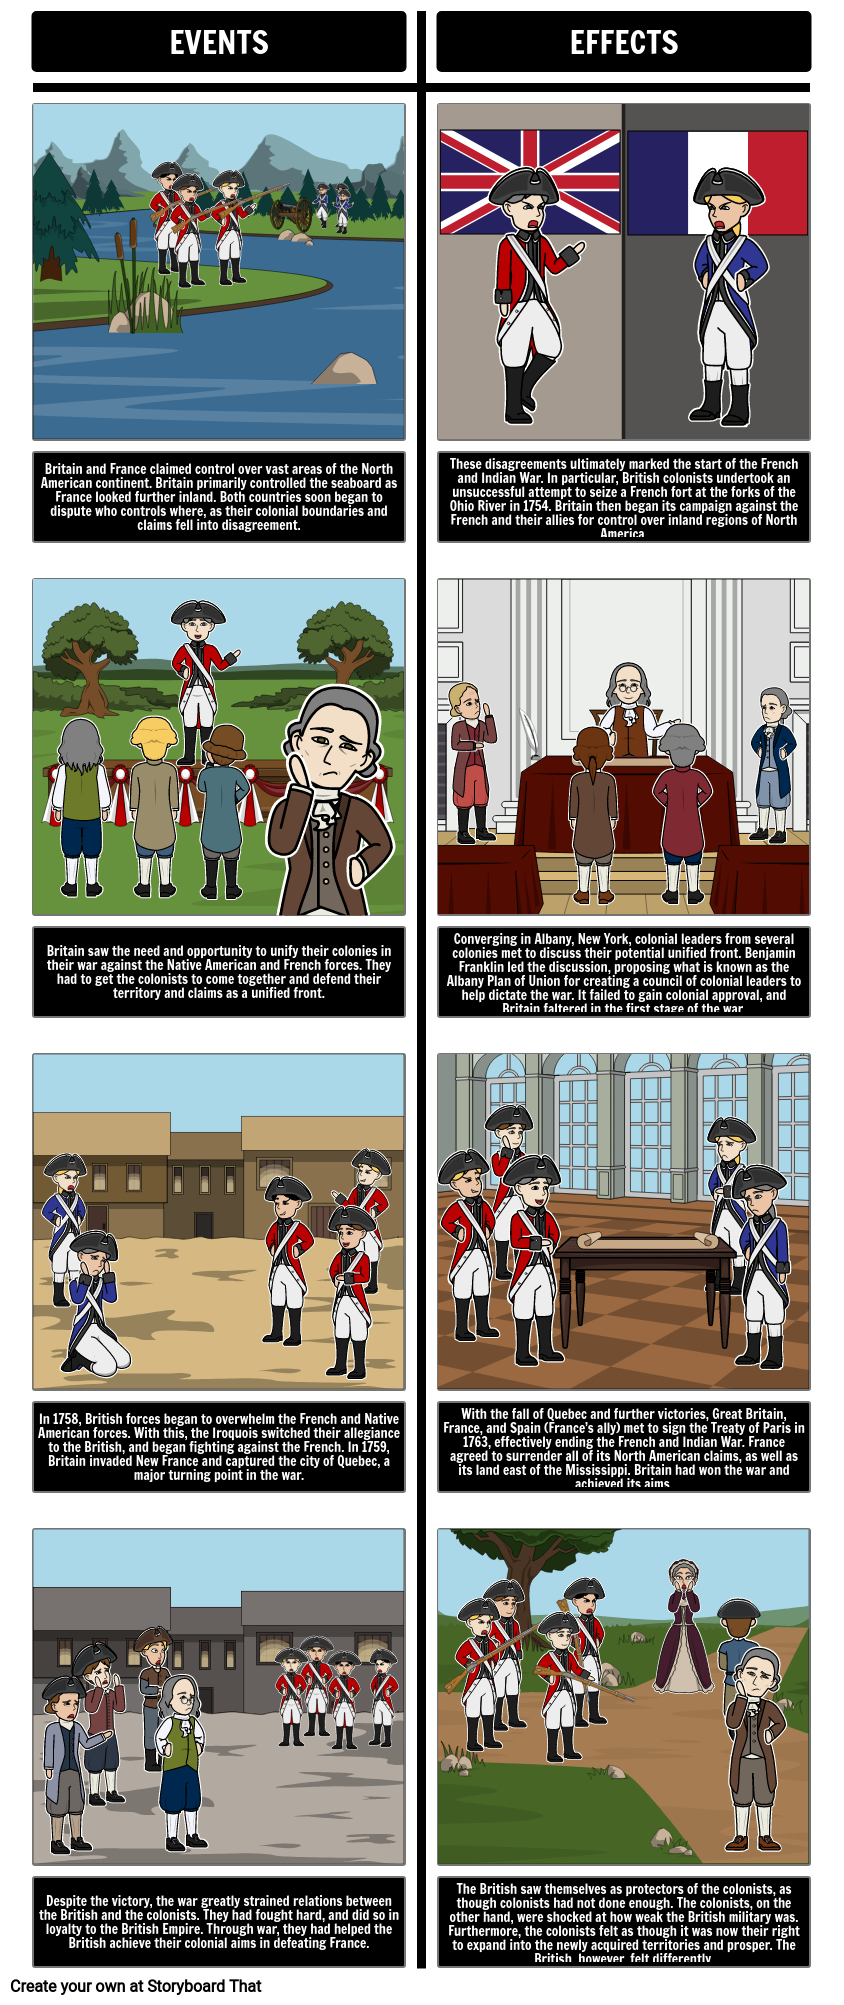 Causes of the american revolution timeline activities the french and indian war 1754 63 publicscrutiny